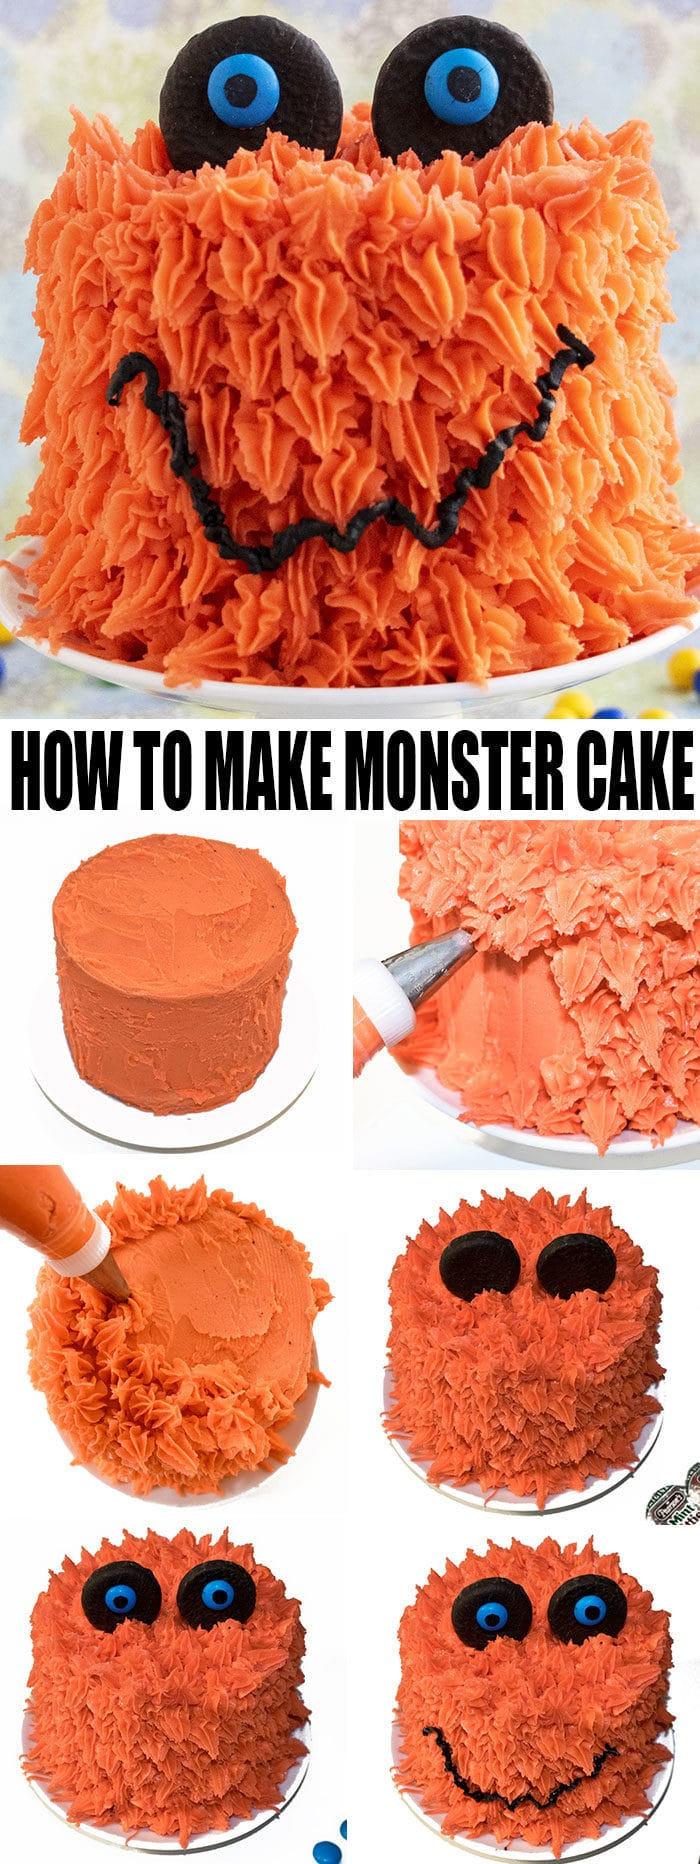 How to Make Monster Cake- Step by Step Instructions